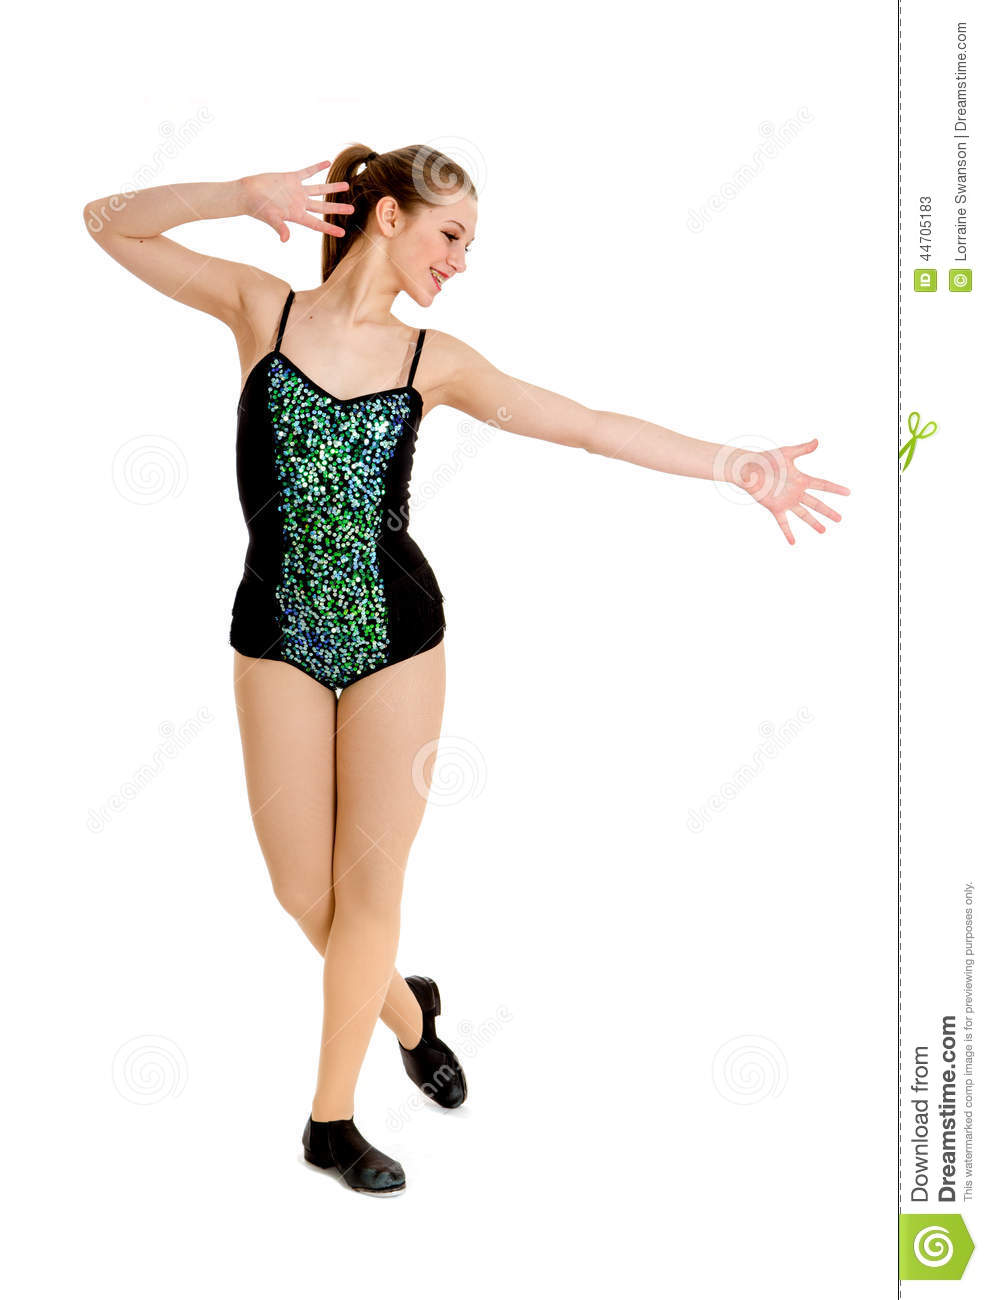 d960cc096 Teen Tap Dance Student stock image. Image of alone, female - 44705183